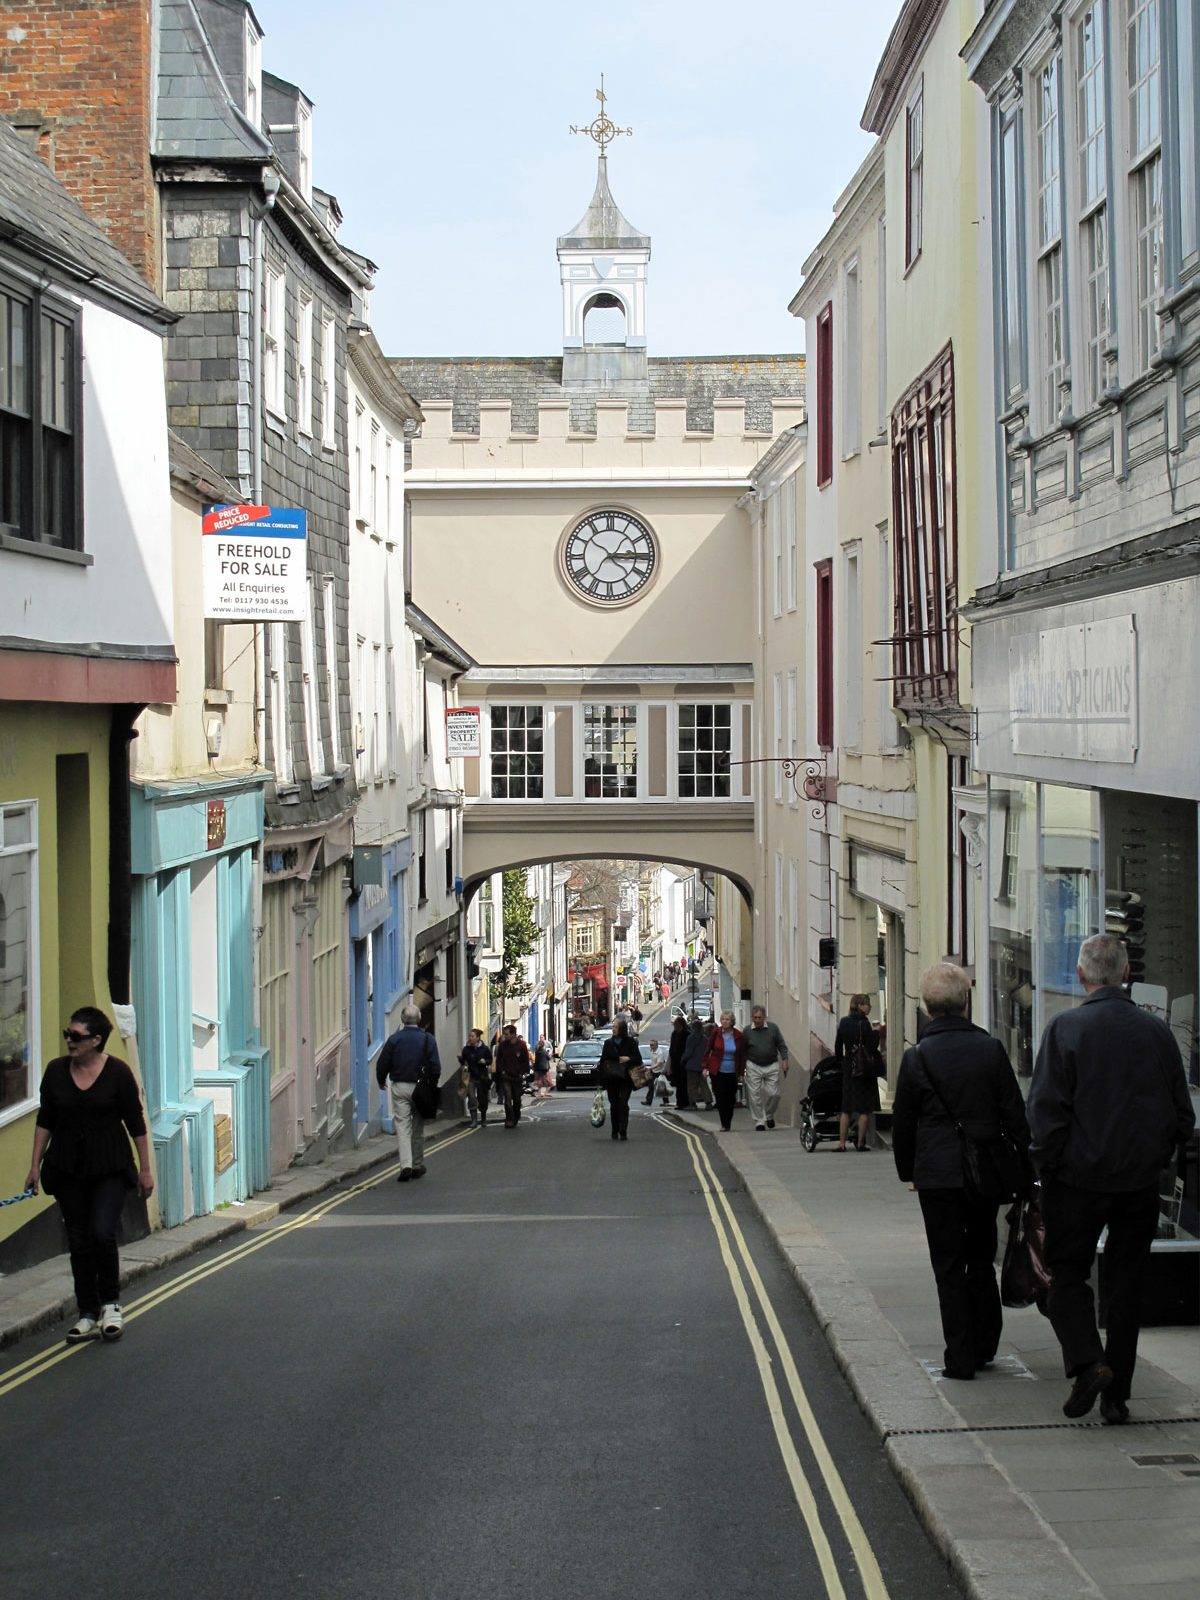 The Eastgate Arch from High Street